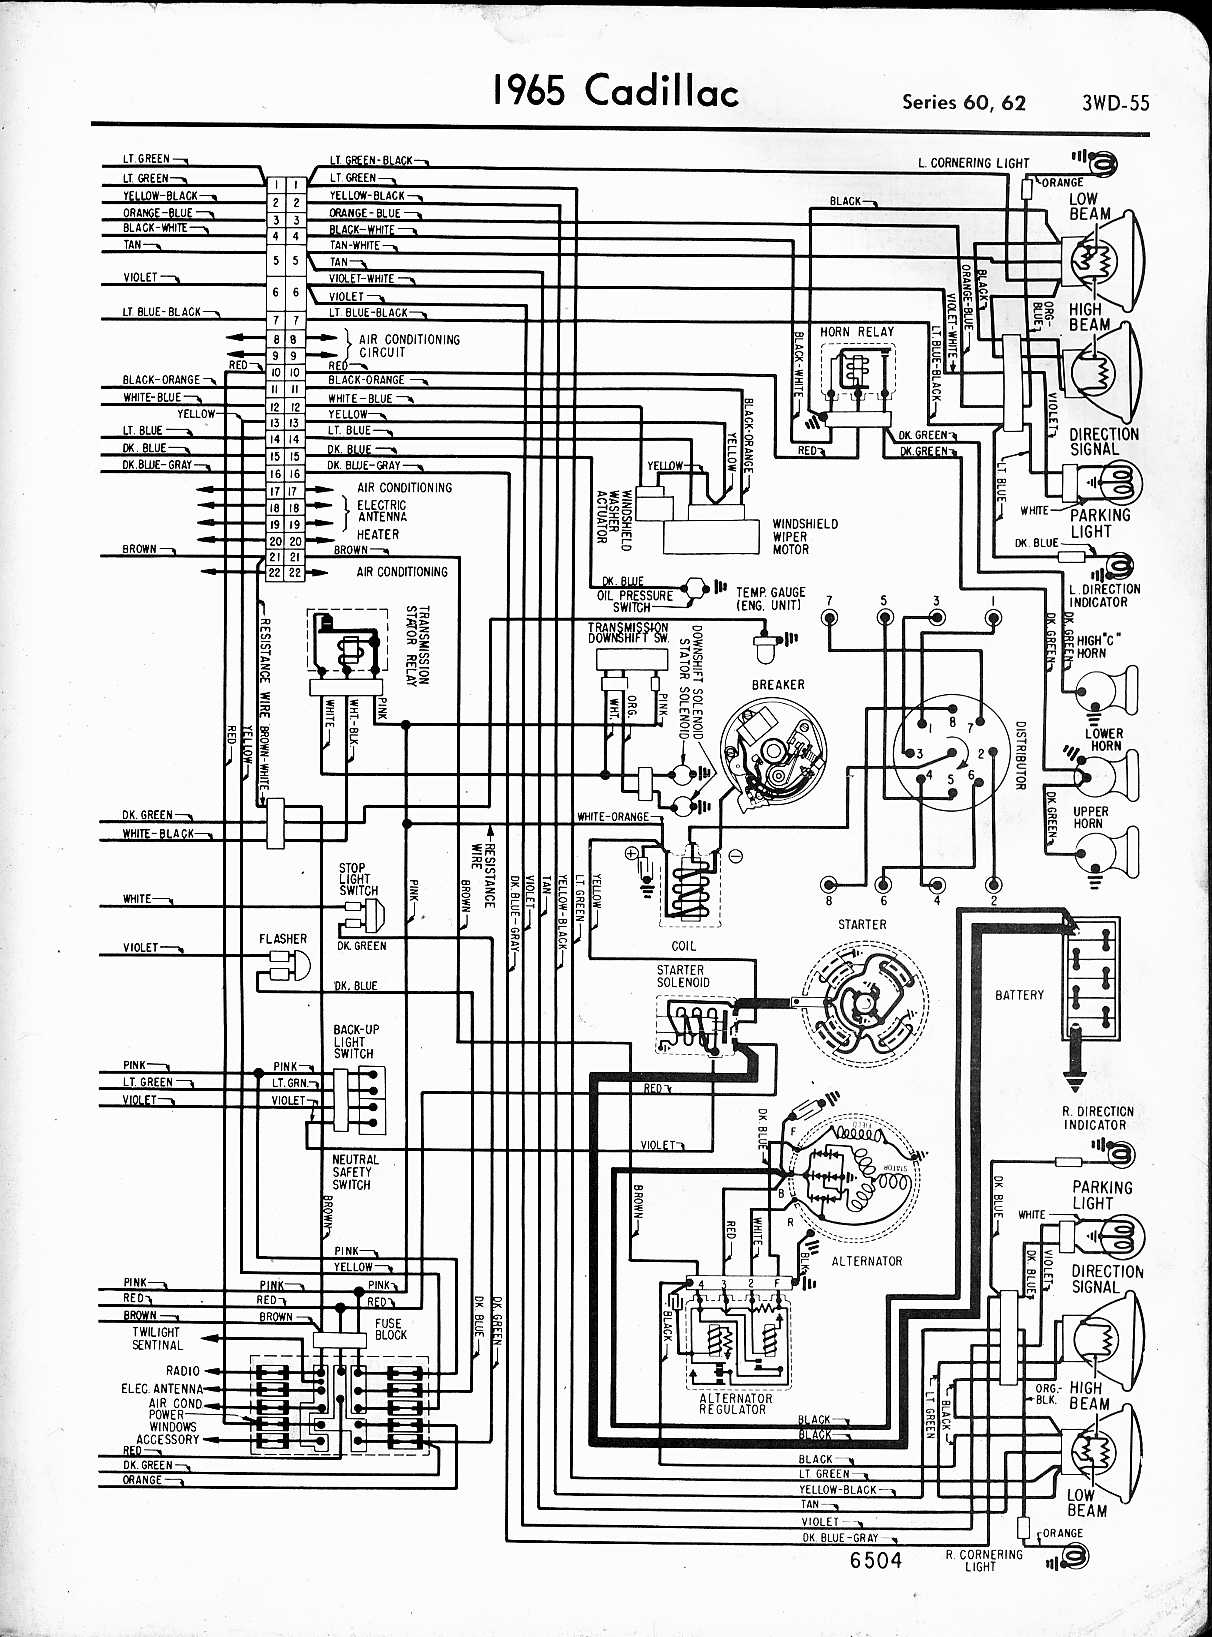 1968 Cadillac Deville Wiring Another Blog About Diagram 2000 Shift Lock Power Steering Schematic